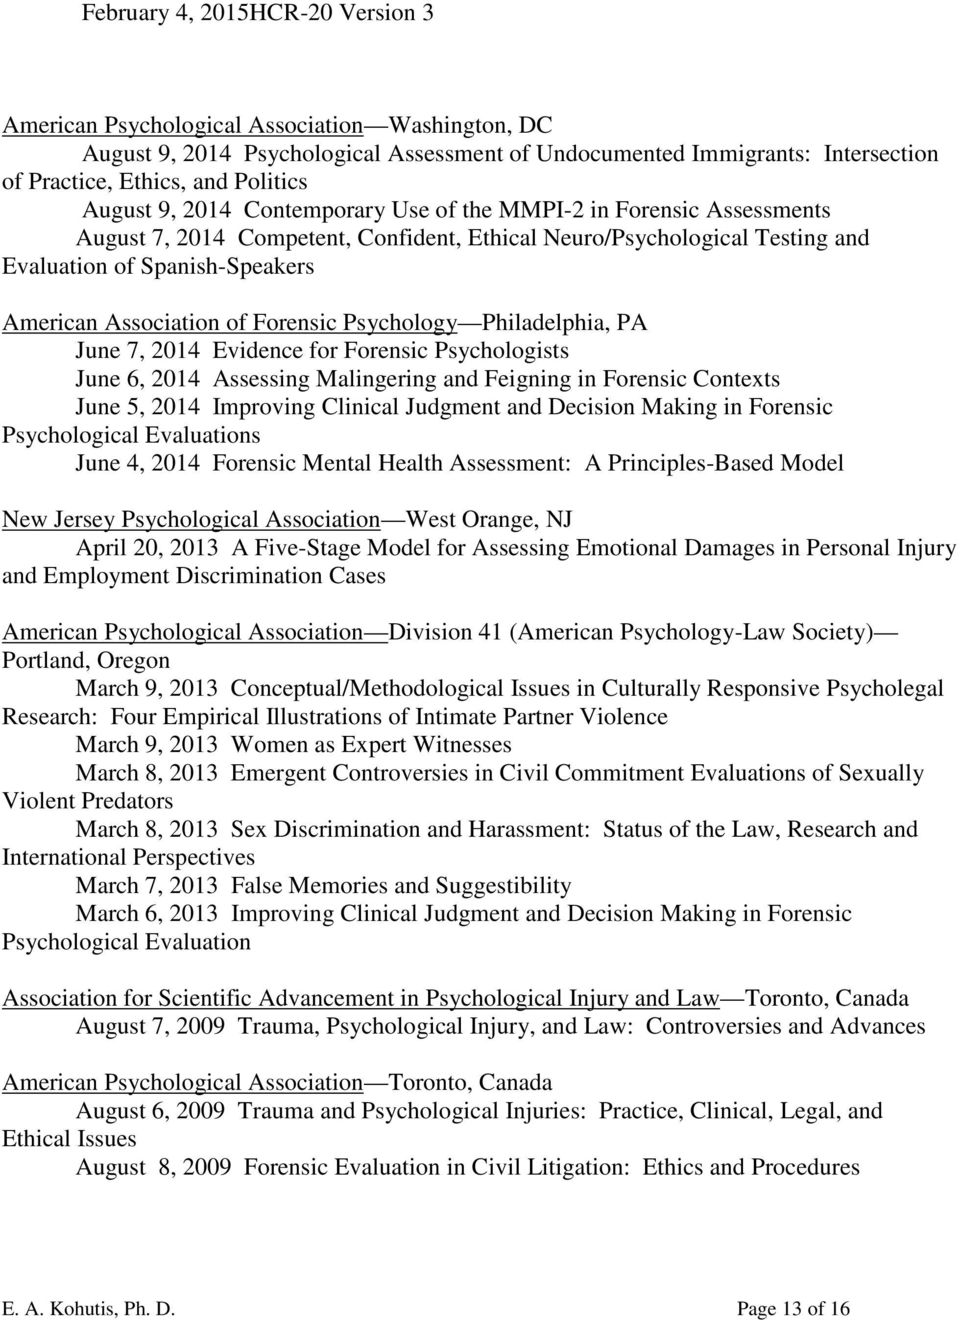 of Forensic Psychology Philadelphia, PA June 7, 2014 Evidence for Forensic Psychologists June 6, 2014 Assessing Malingering and Feigning in Forensic Contexts June 5, 2014 Improving Clinical Judgment